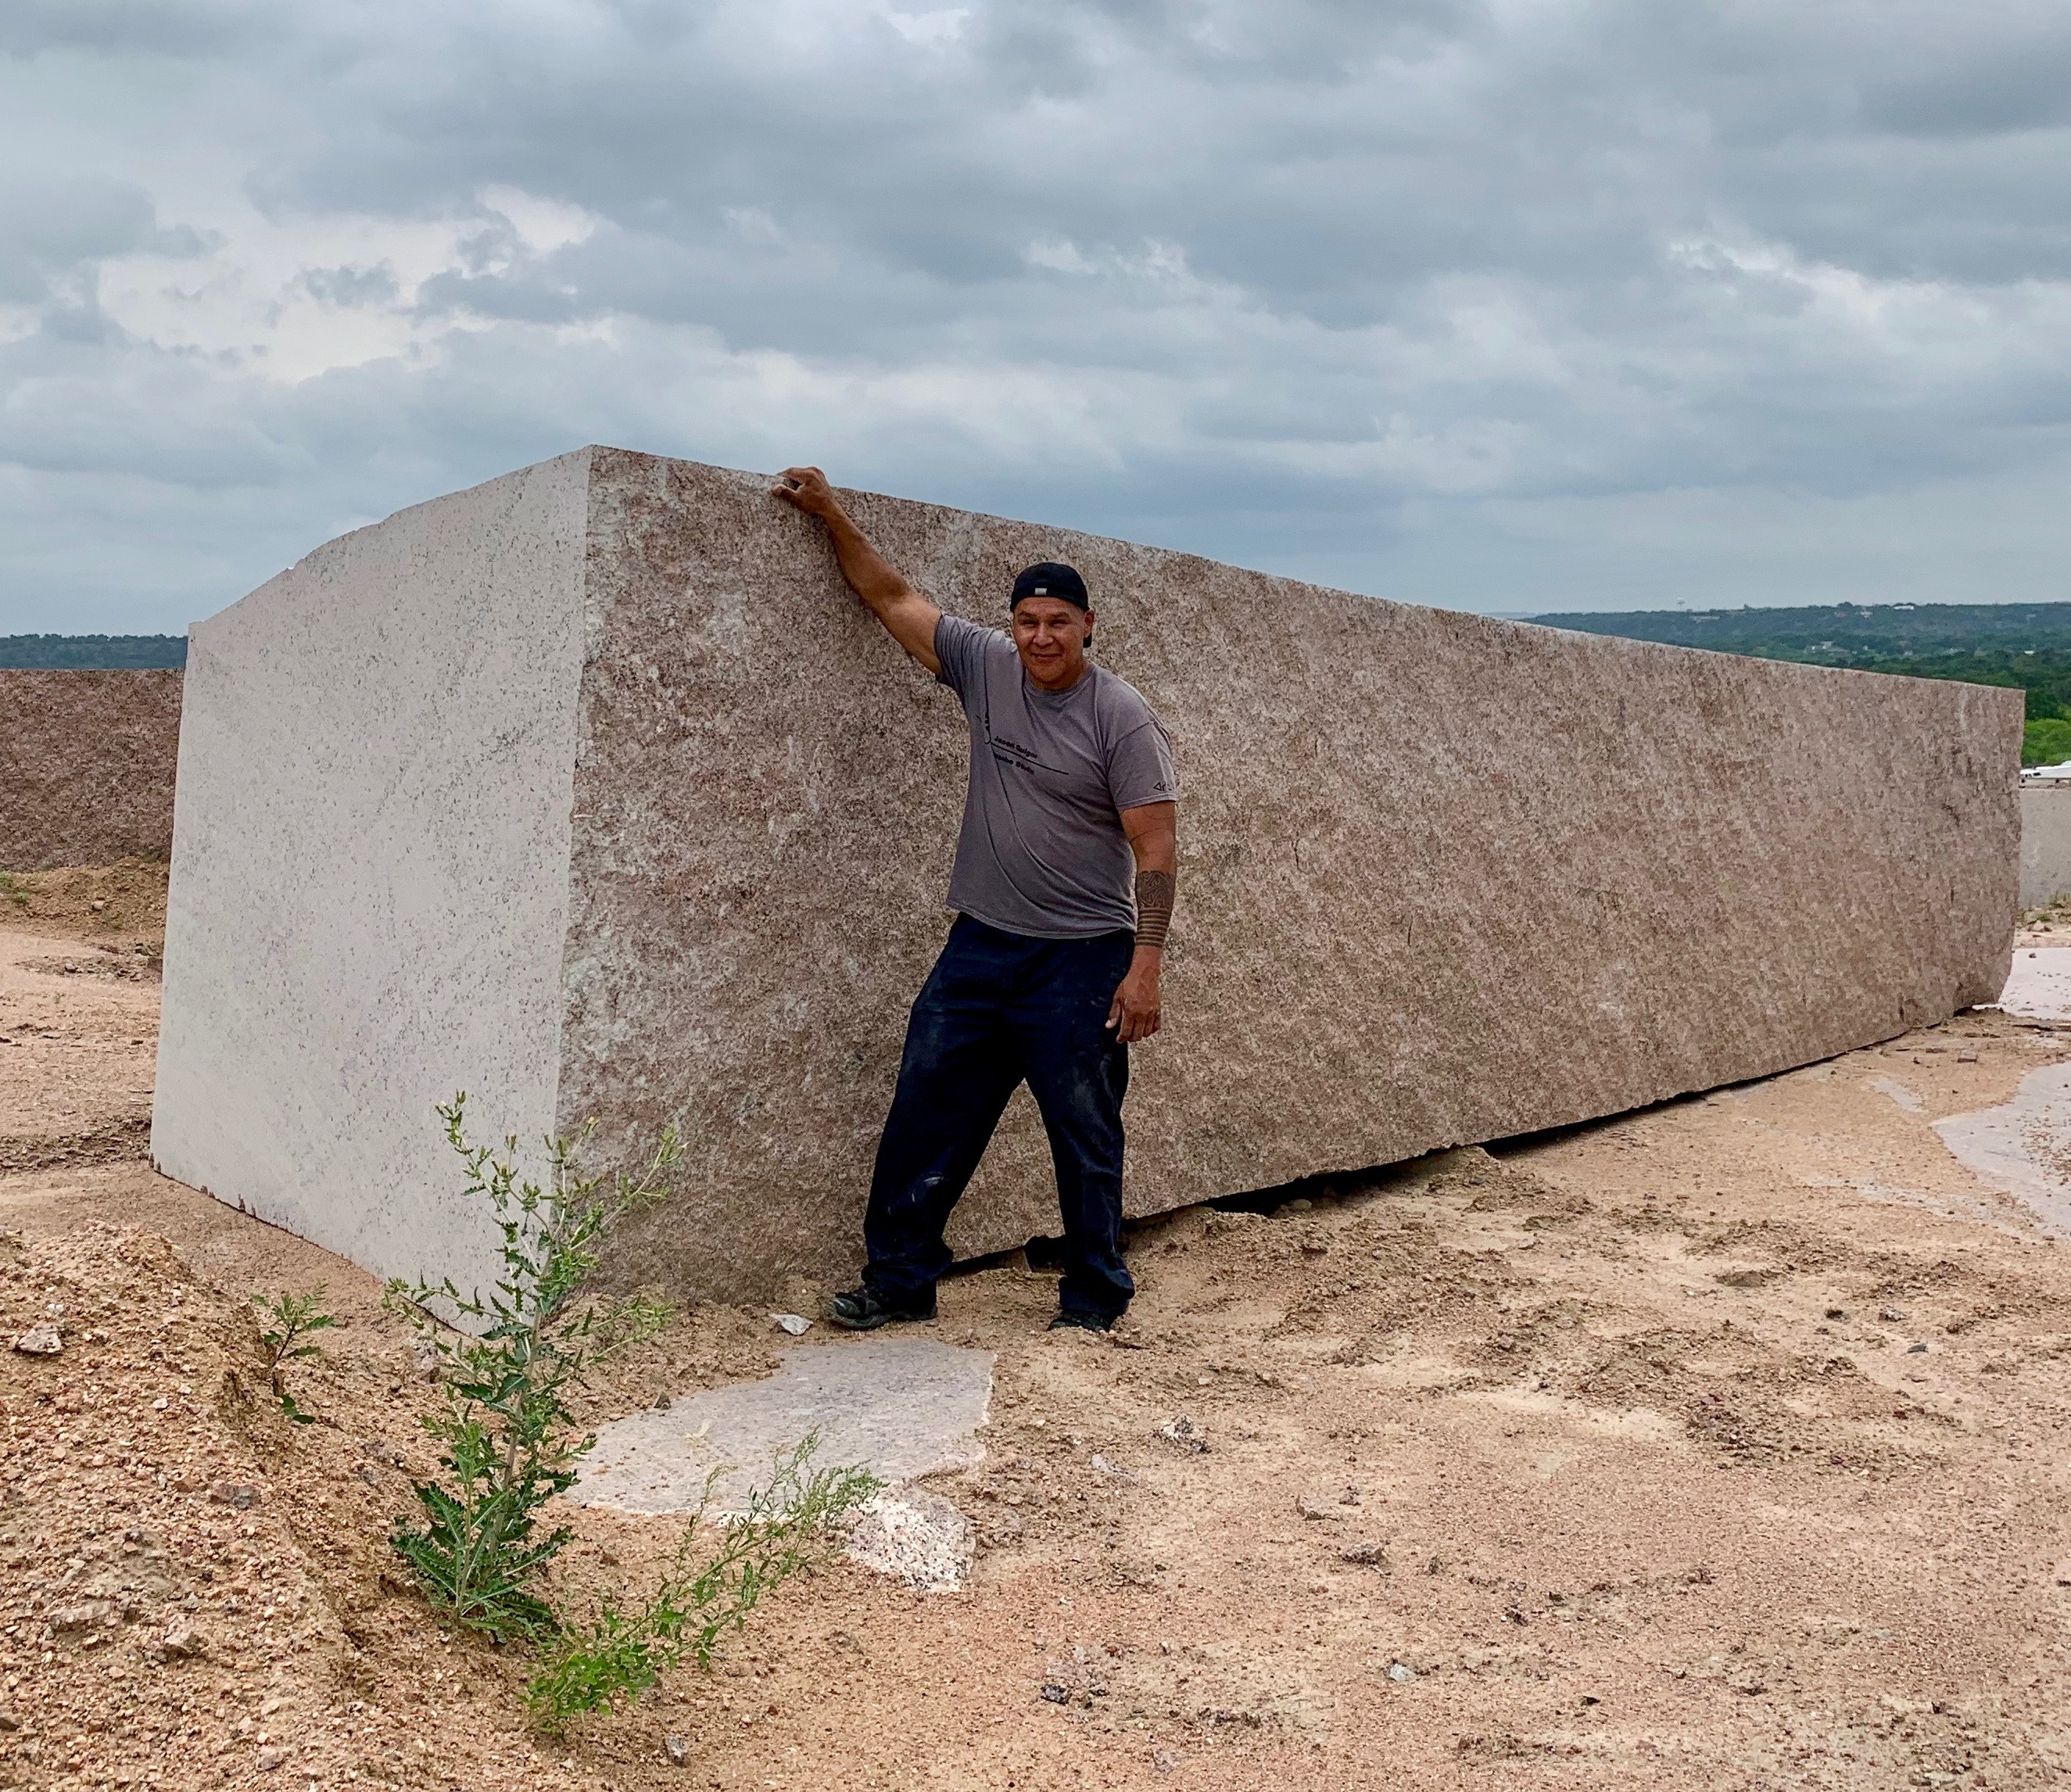 Jason Quigno immediately had to figure out how to take this quarry block home, or at least have his photo taken with it